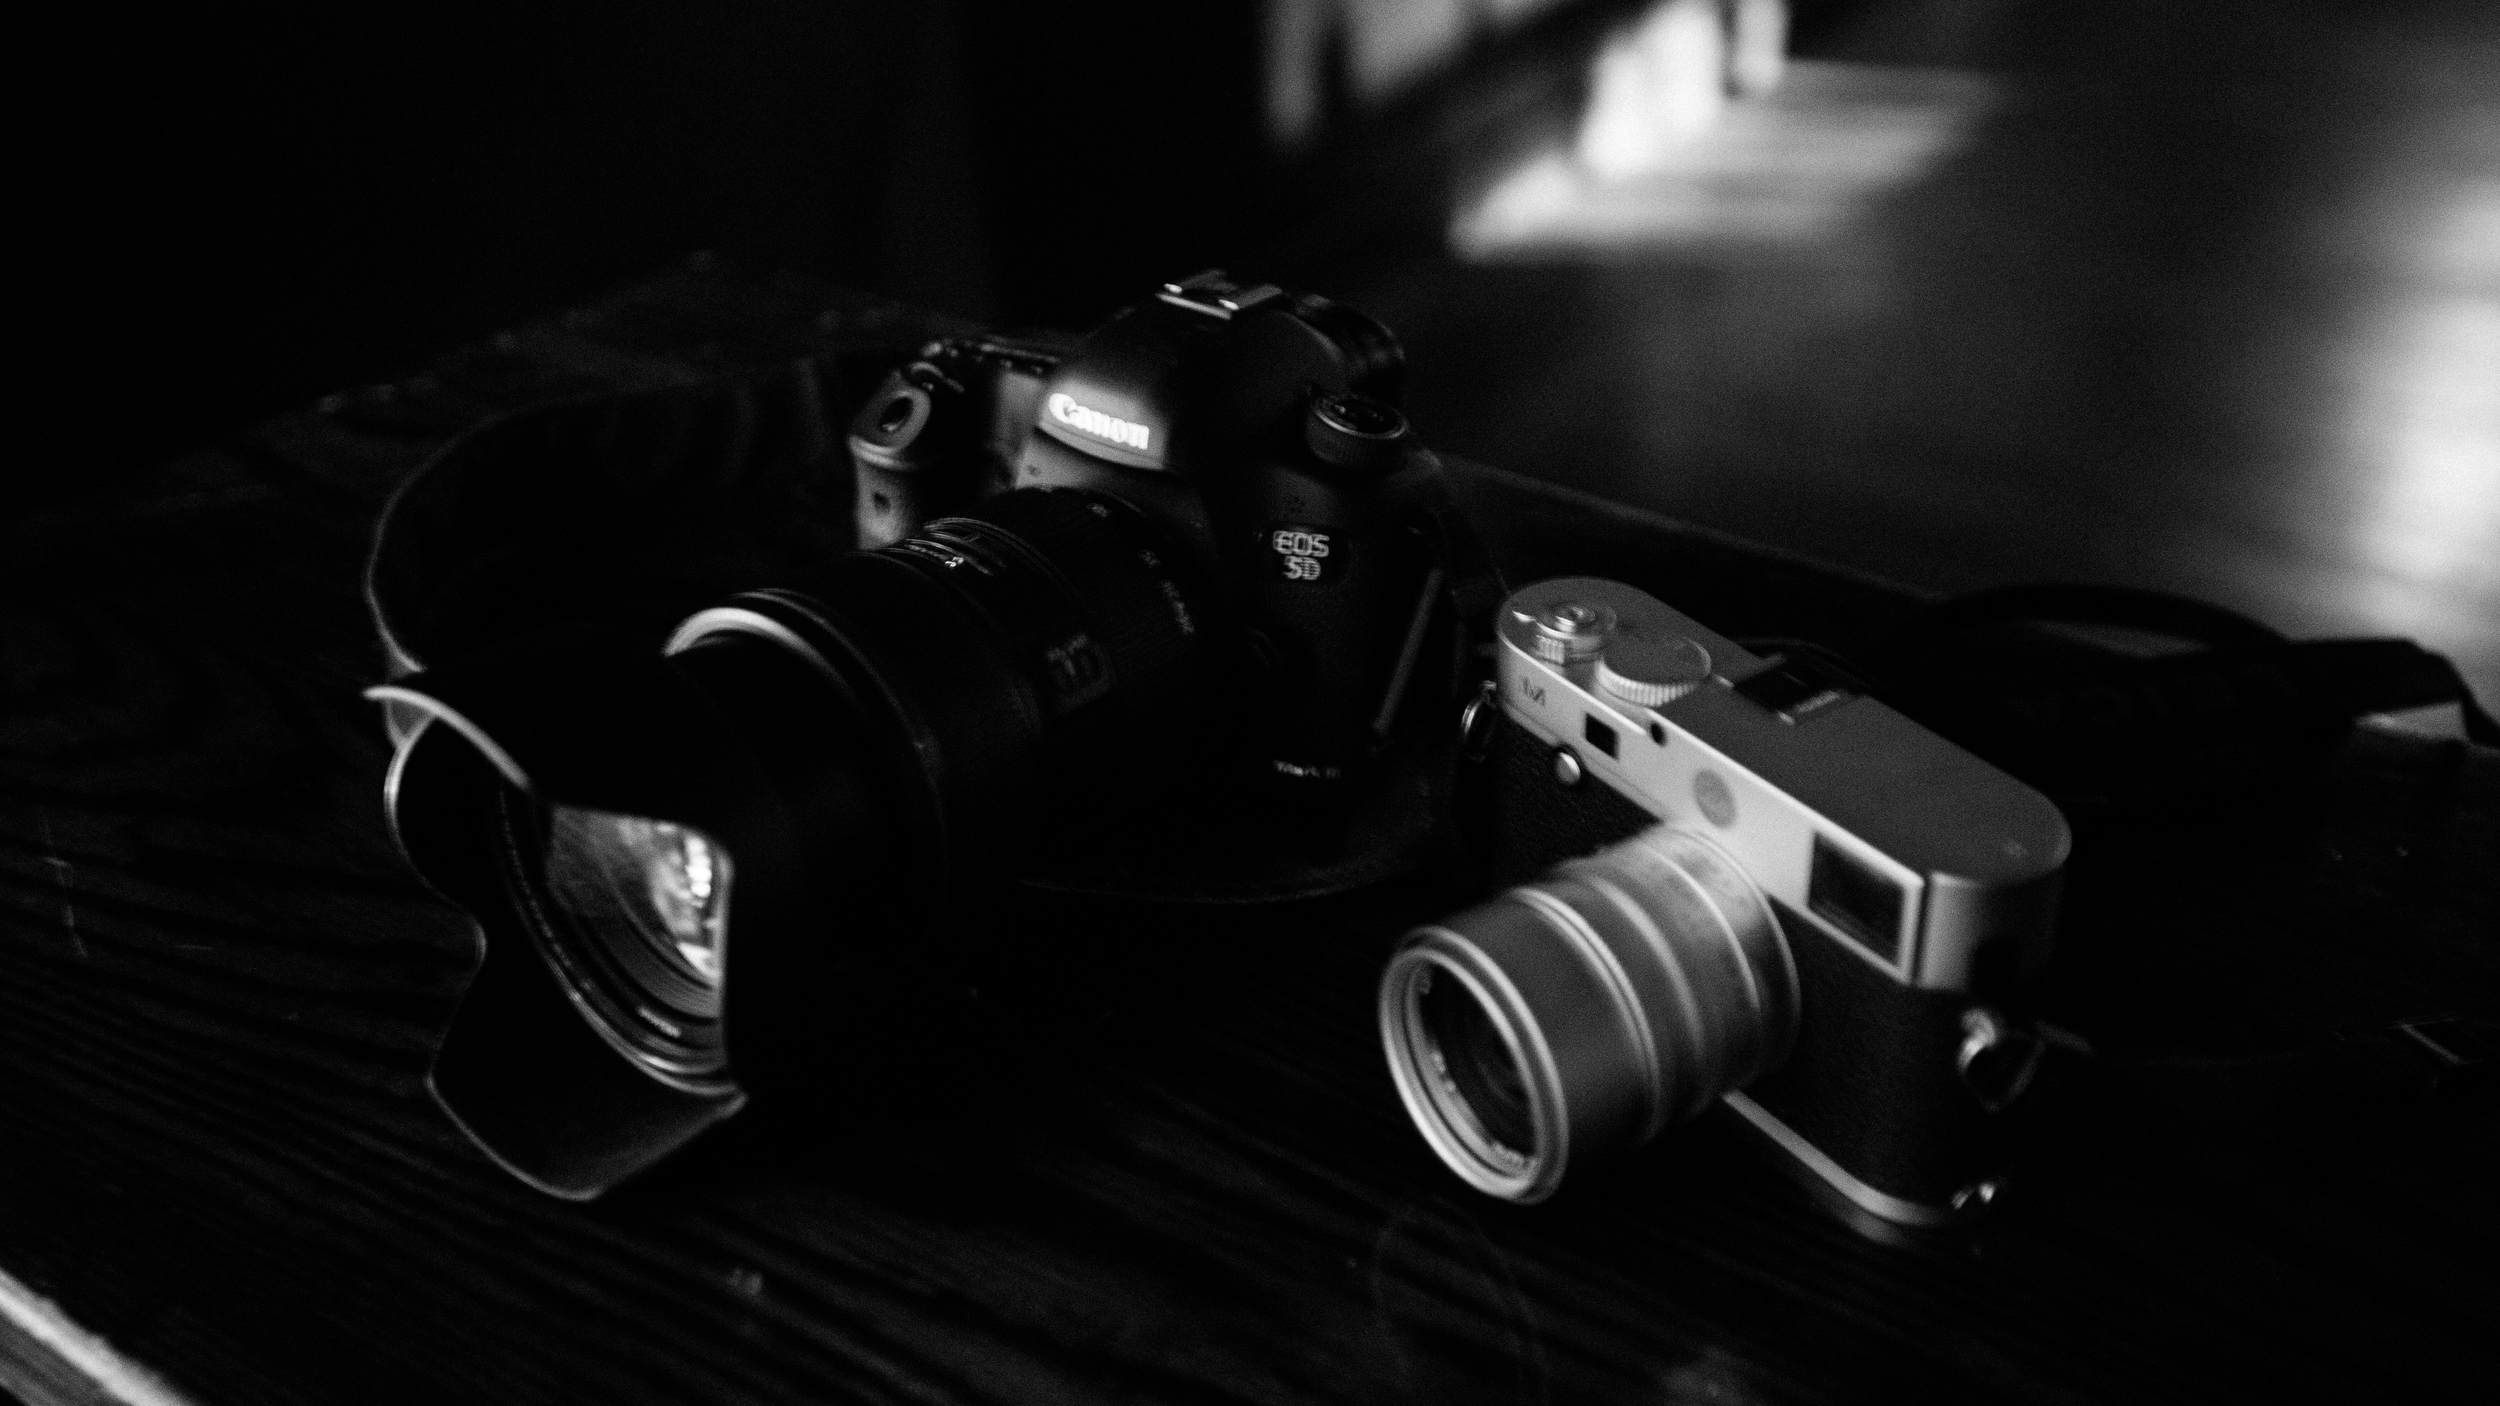 Canon 5D MKIII and the Leica M